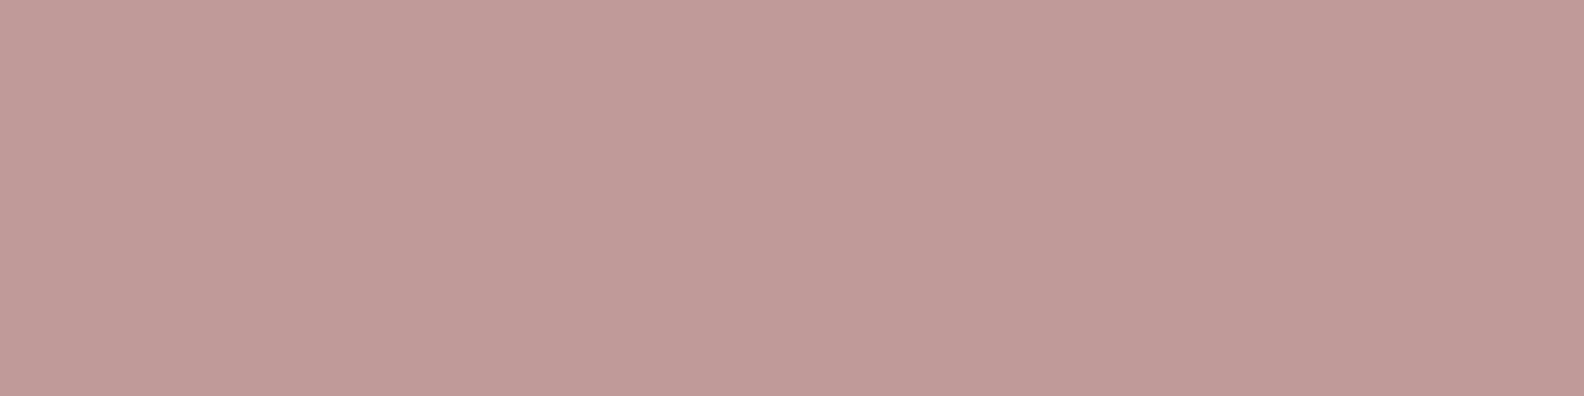 1584x396 Tuscany Solid Color Background